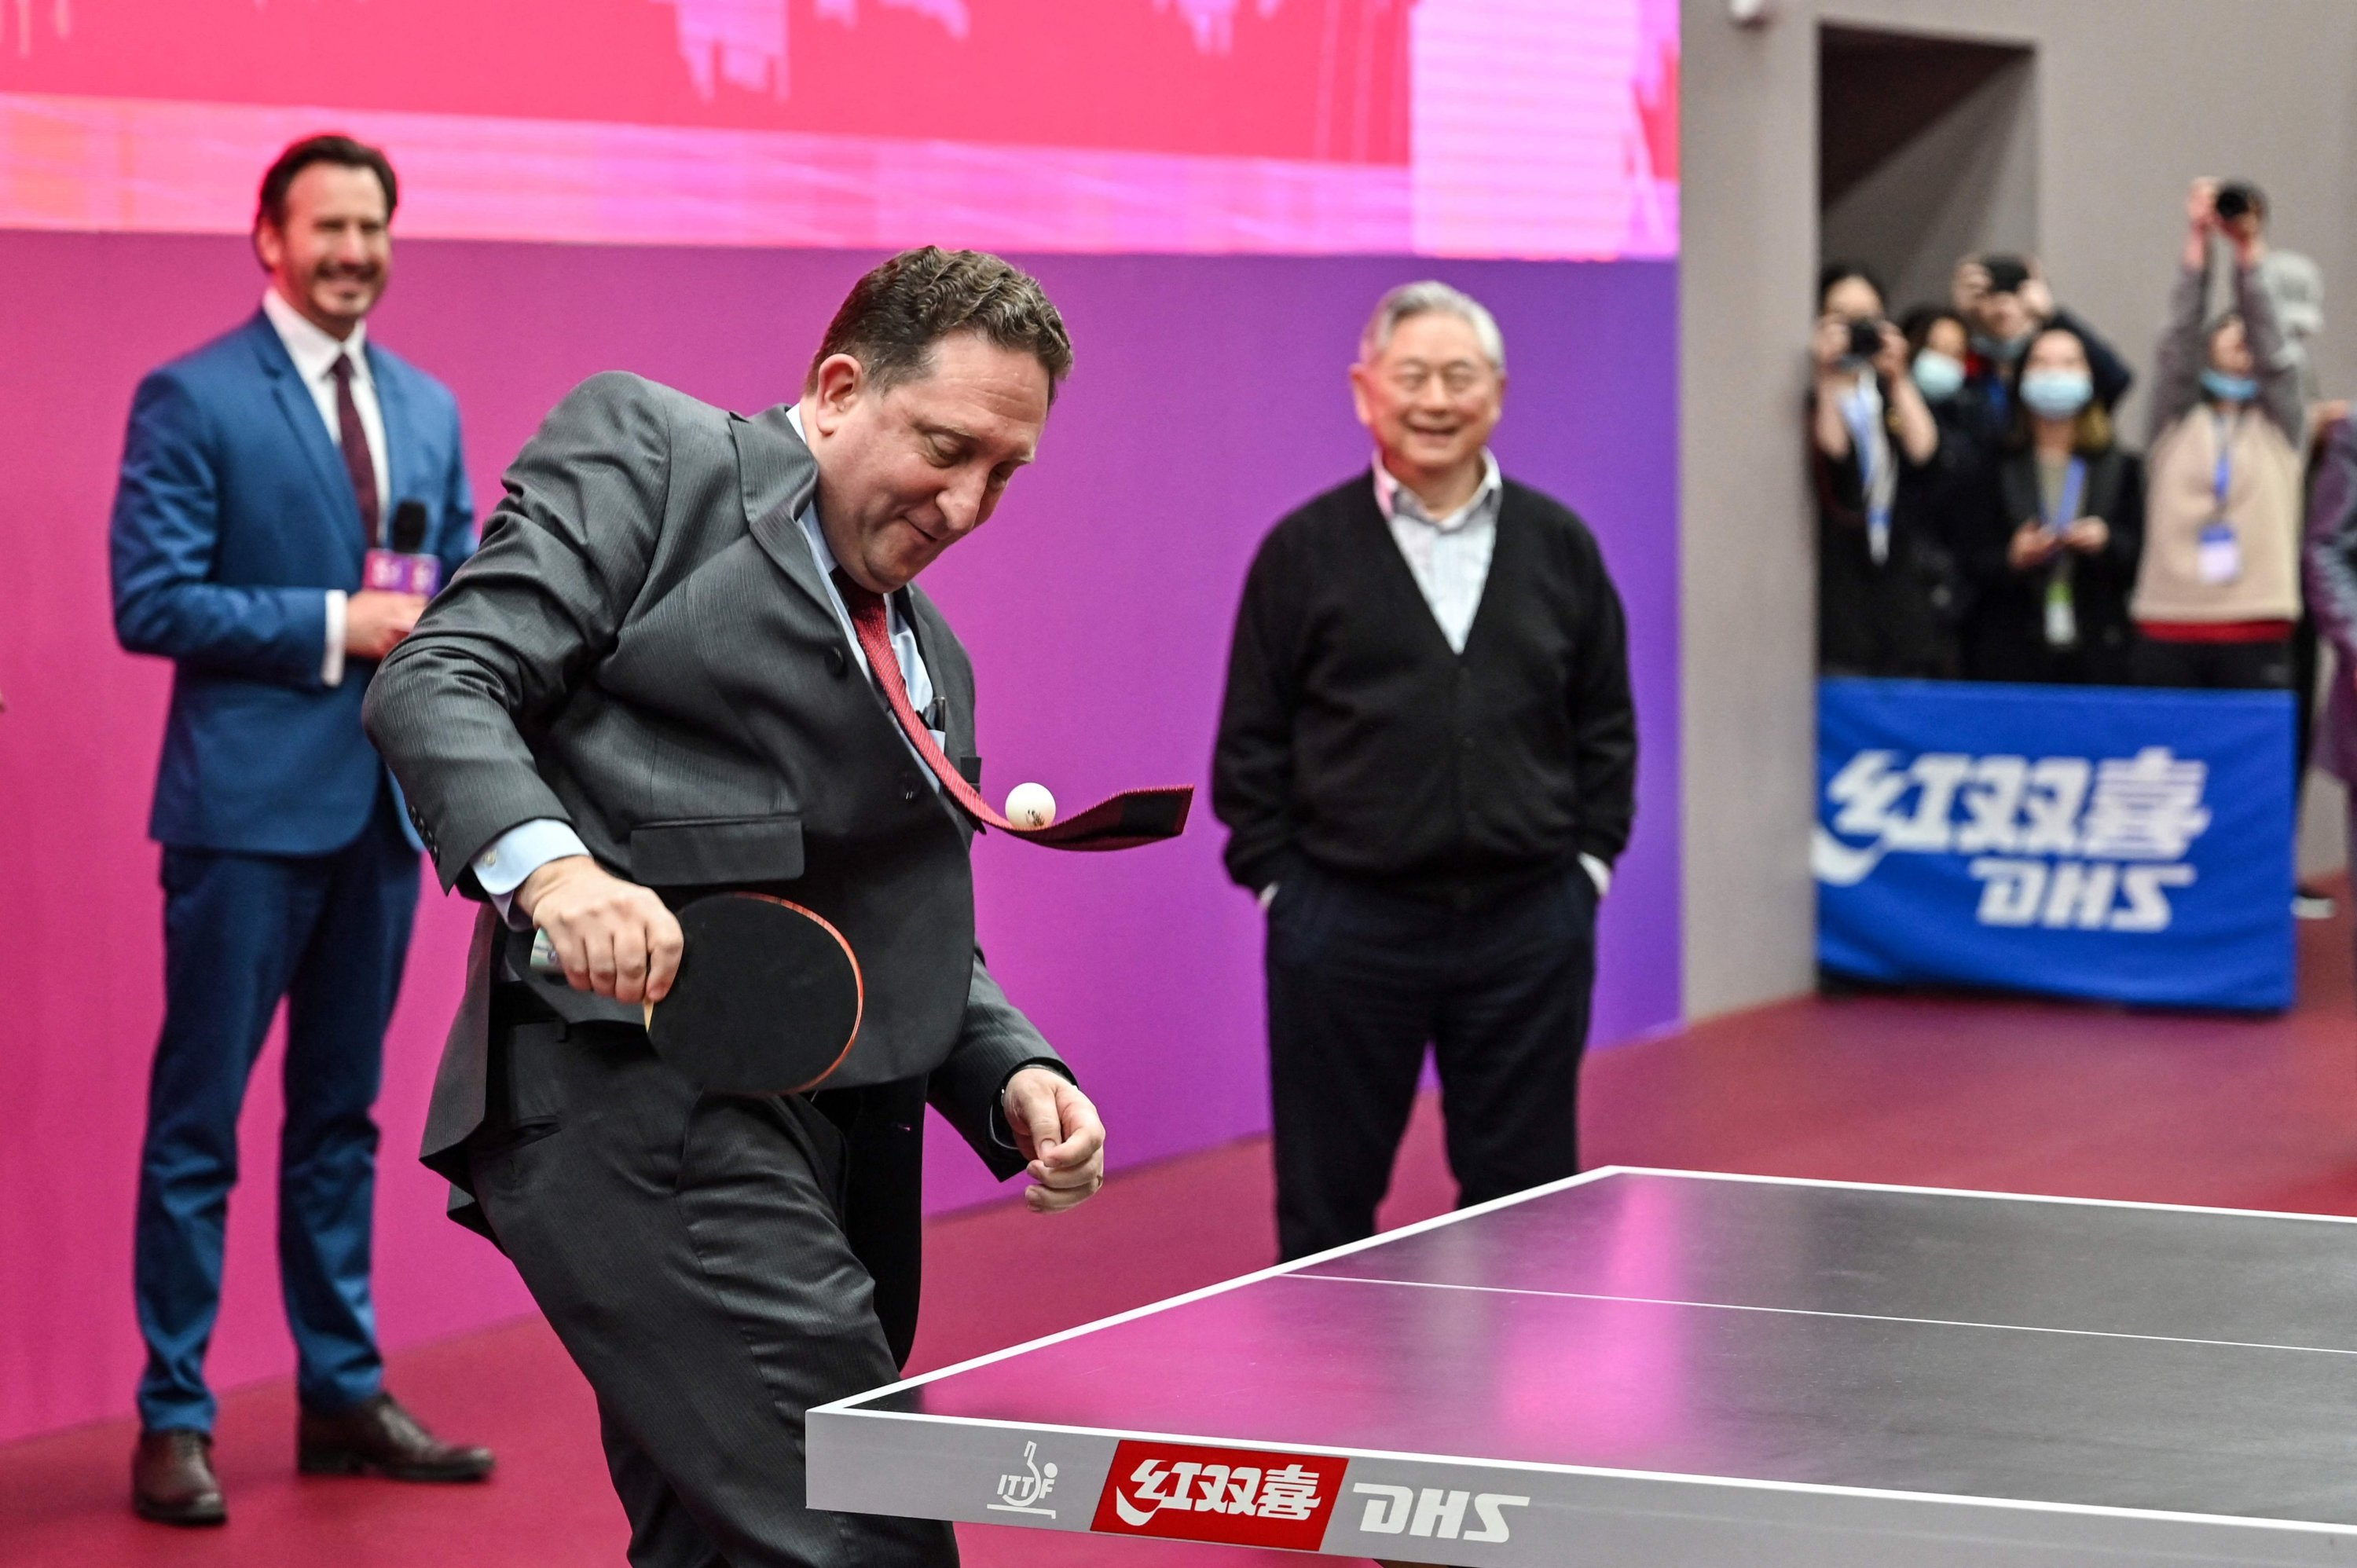 U.S. Consul General in Shanghai James Heller plays table tennis during a ceremony to mark the 50th anniversary of Ping Pong diplomacy, at the International Table Tennis Federation museum, Shanghai, China, April 10, 2021. (AFP Photo)